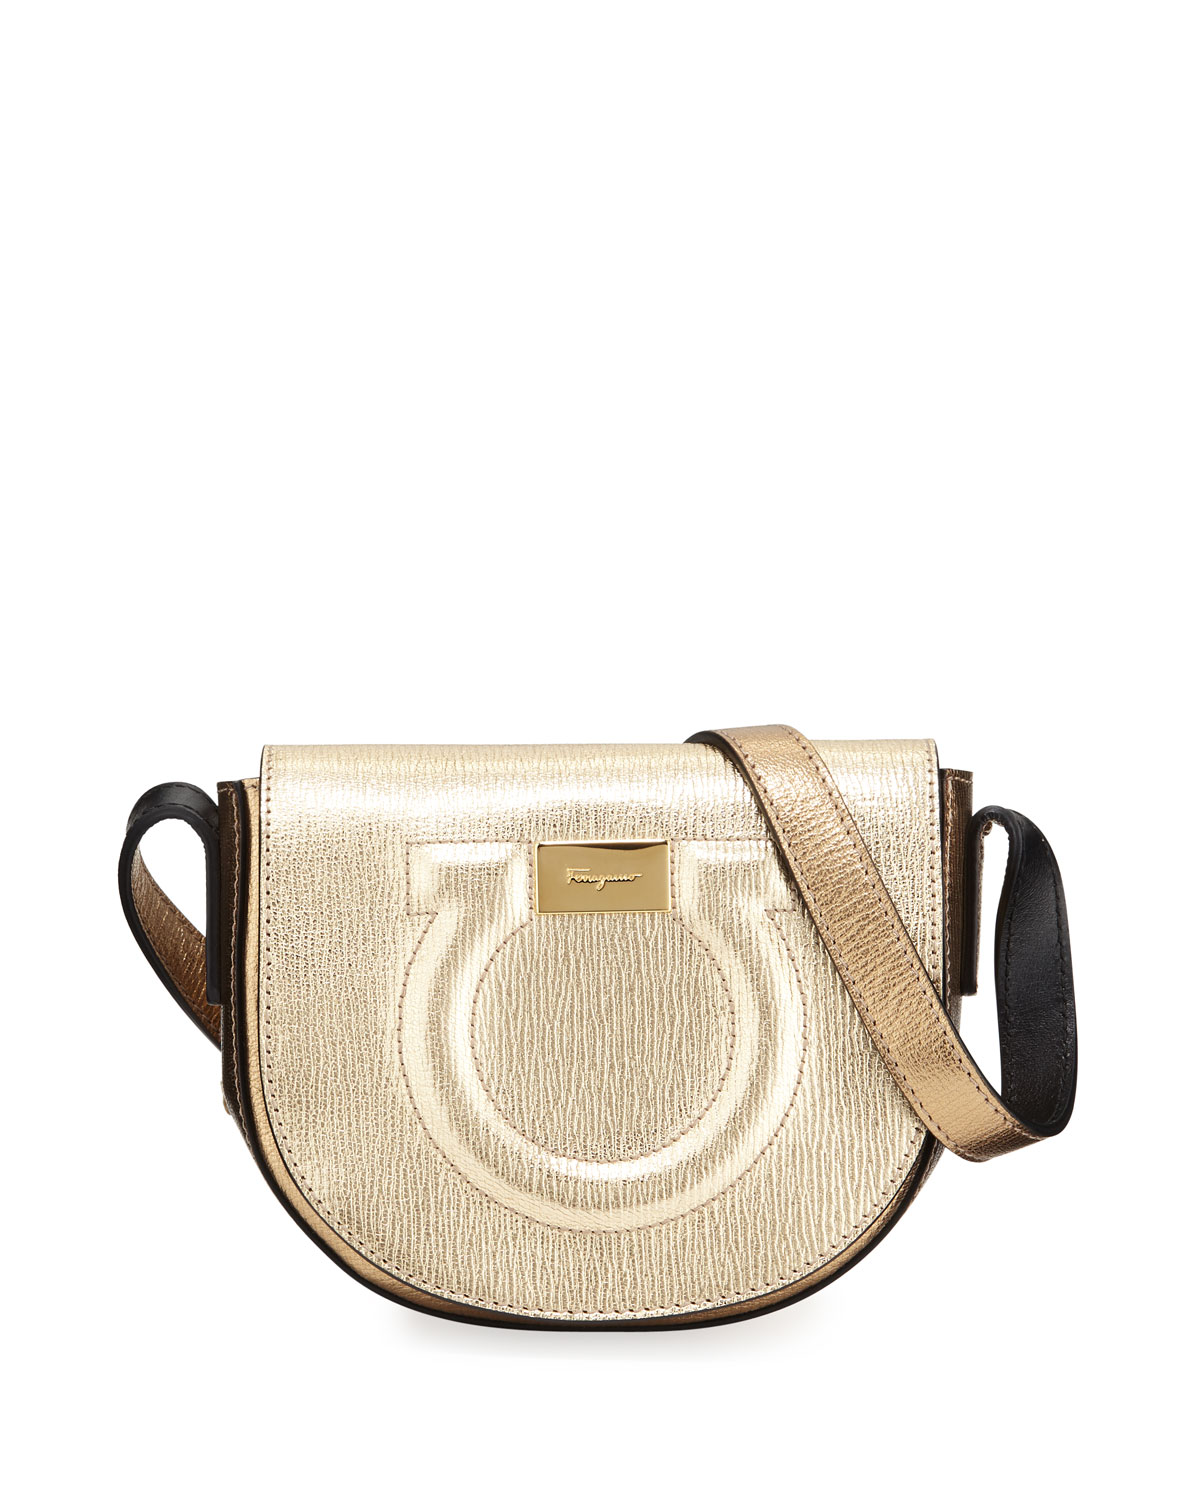 Salvatore Ferragamo Gancio City Metallic Crossbody Bag In Gold ... 8190a51b1313e